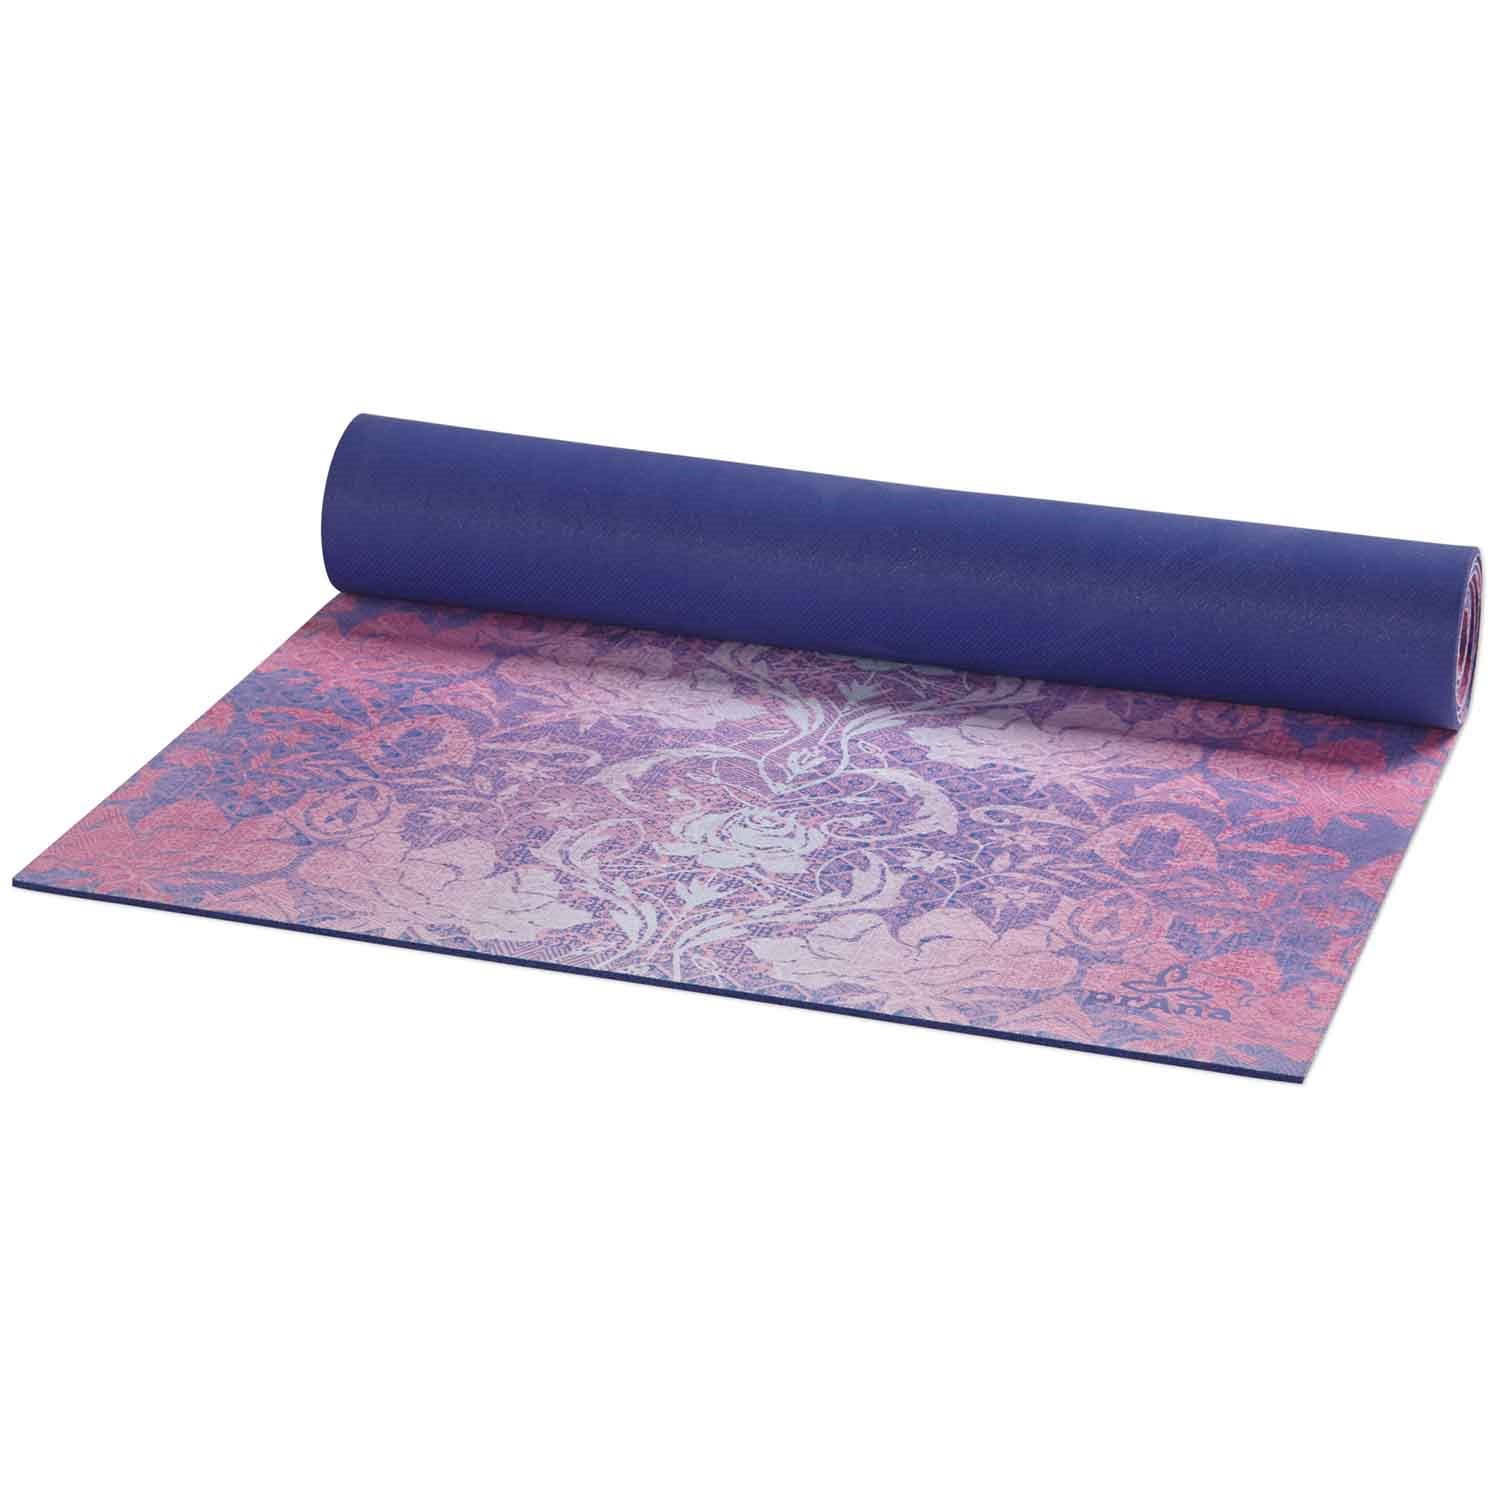 design printed floral com clonko blue india yoga gravolite german delhi mats mat wholesaler supplier fitness